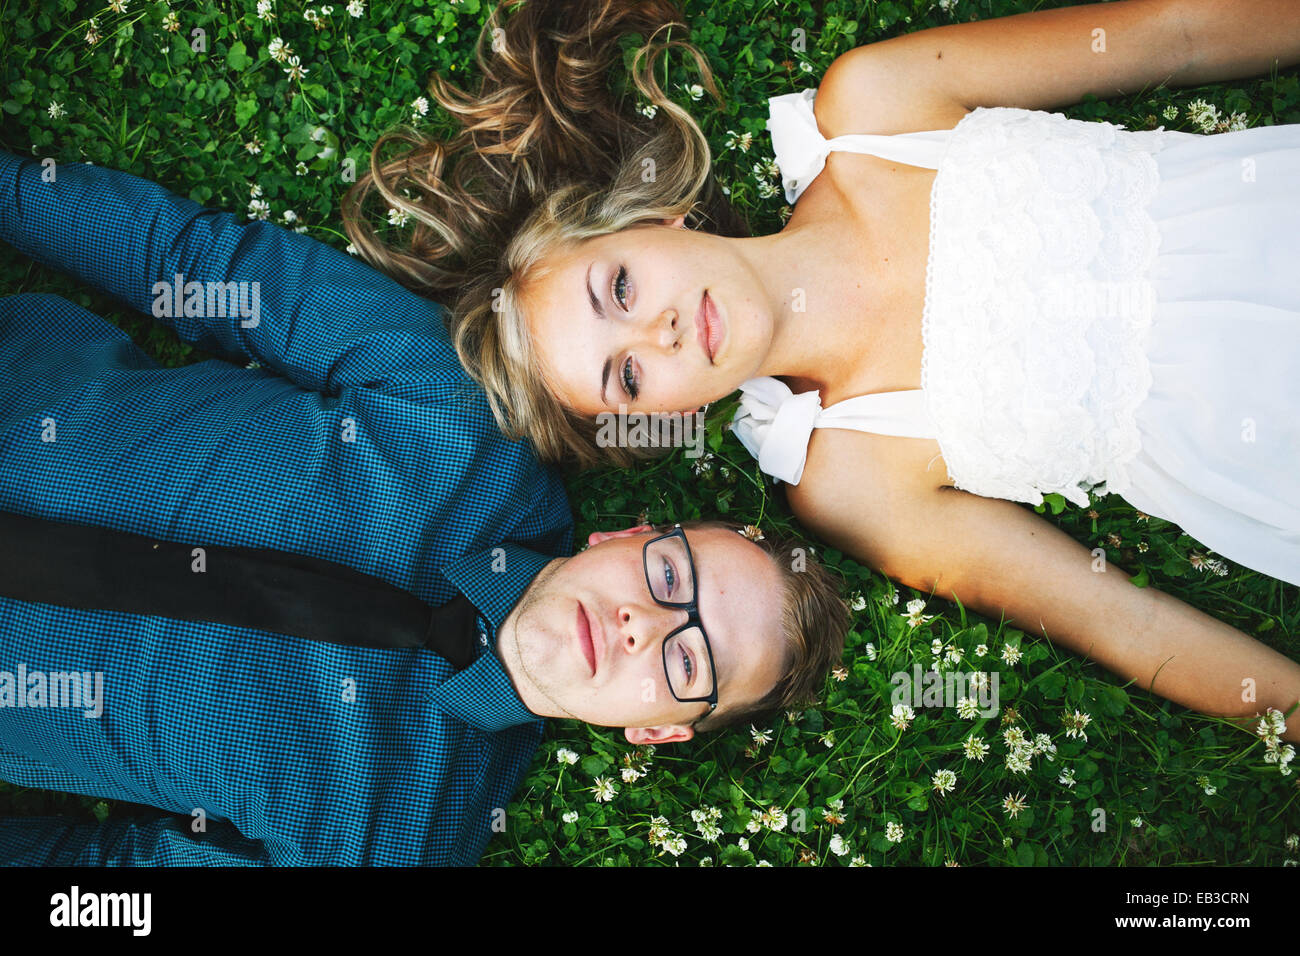 USA, Minnesota, Hennepin County, Minneapolis, Overhead view of young couple lying on grass - Stock Image